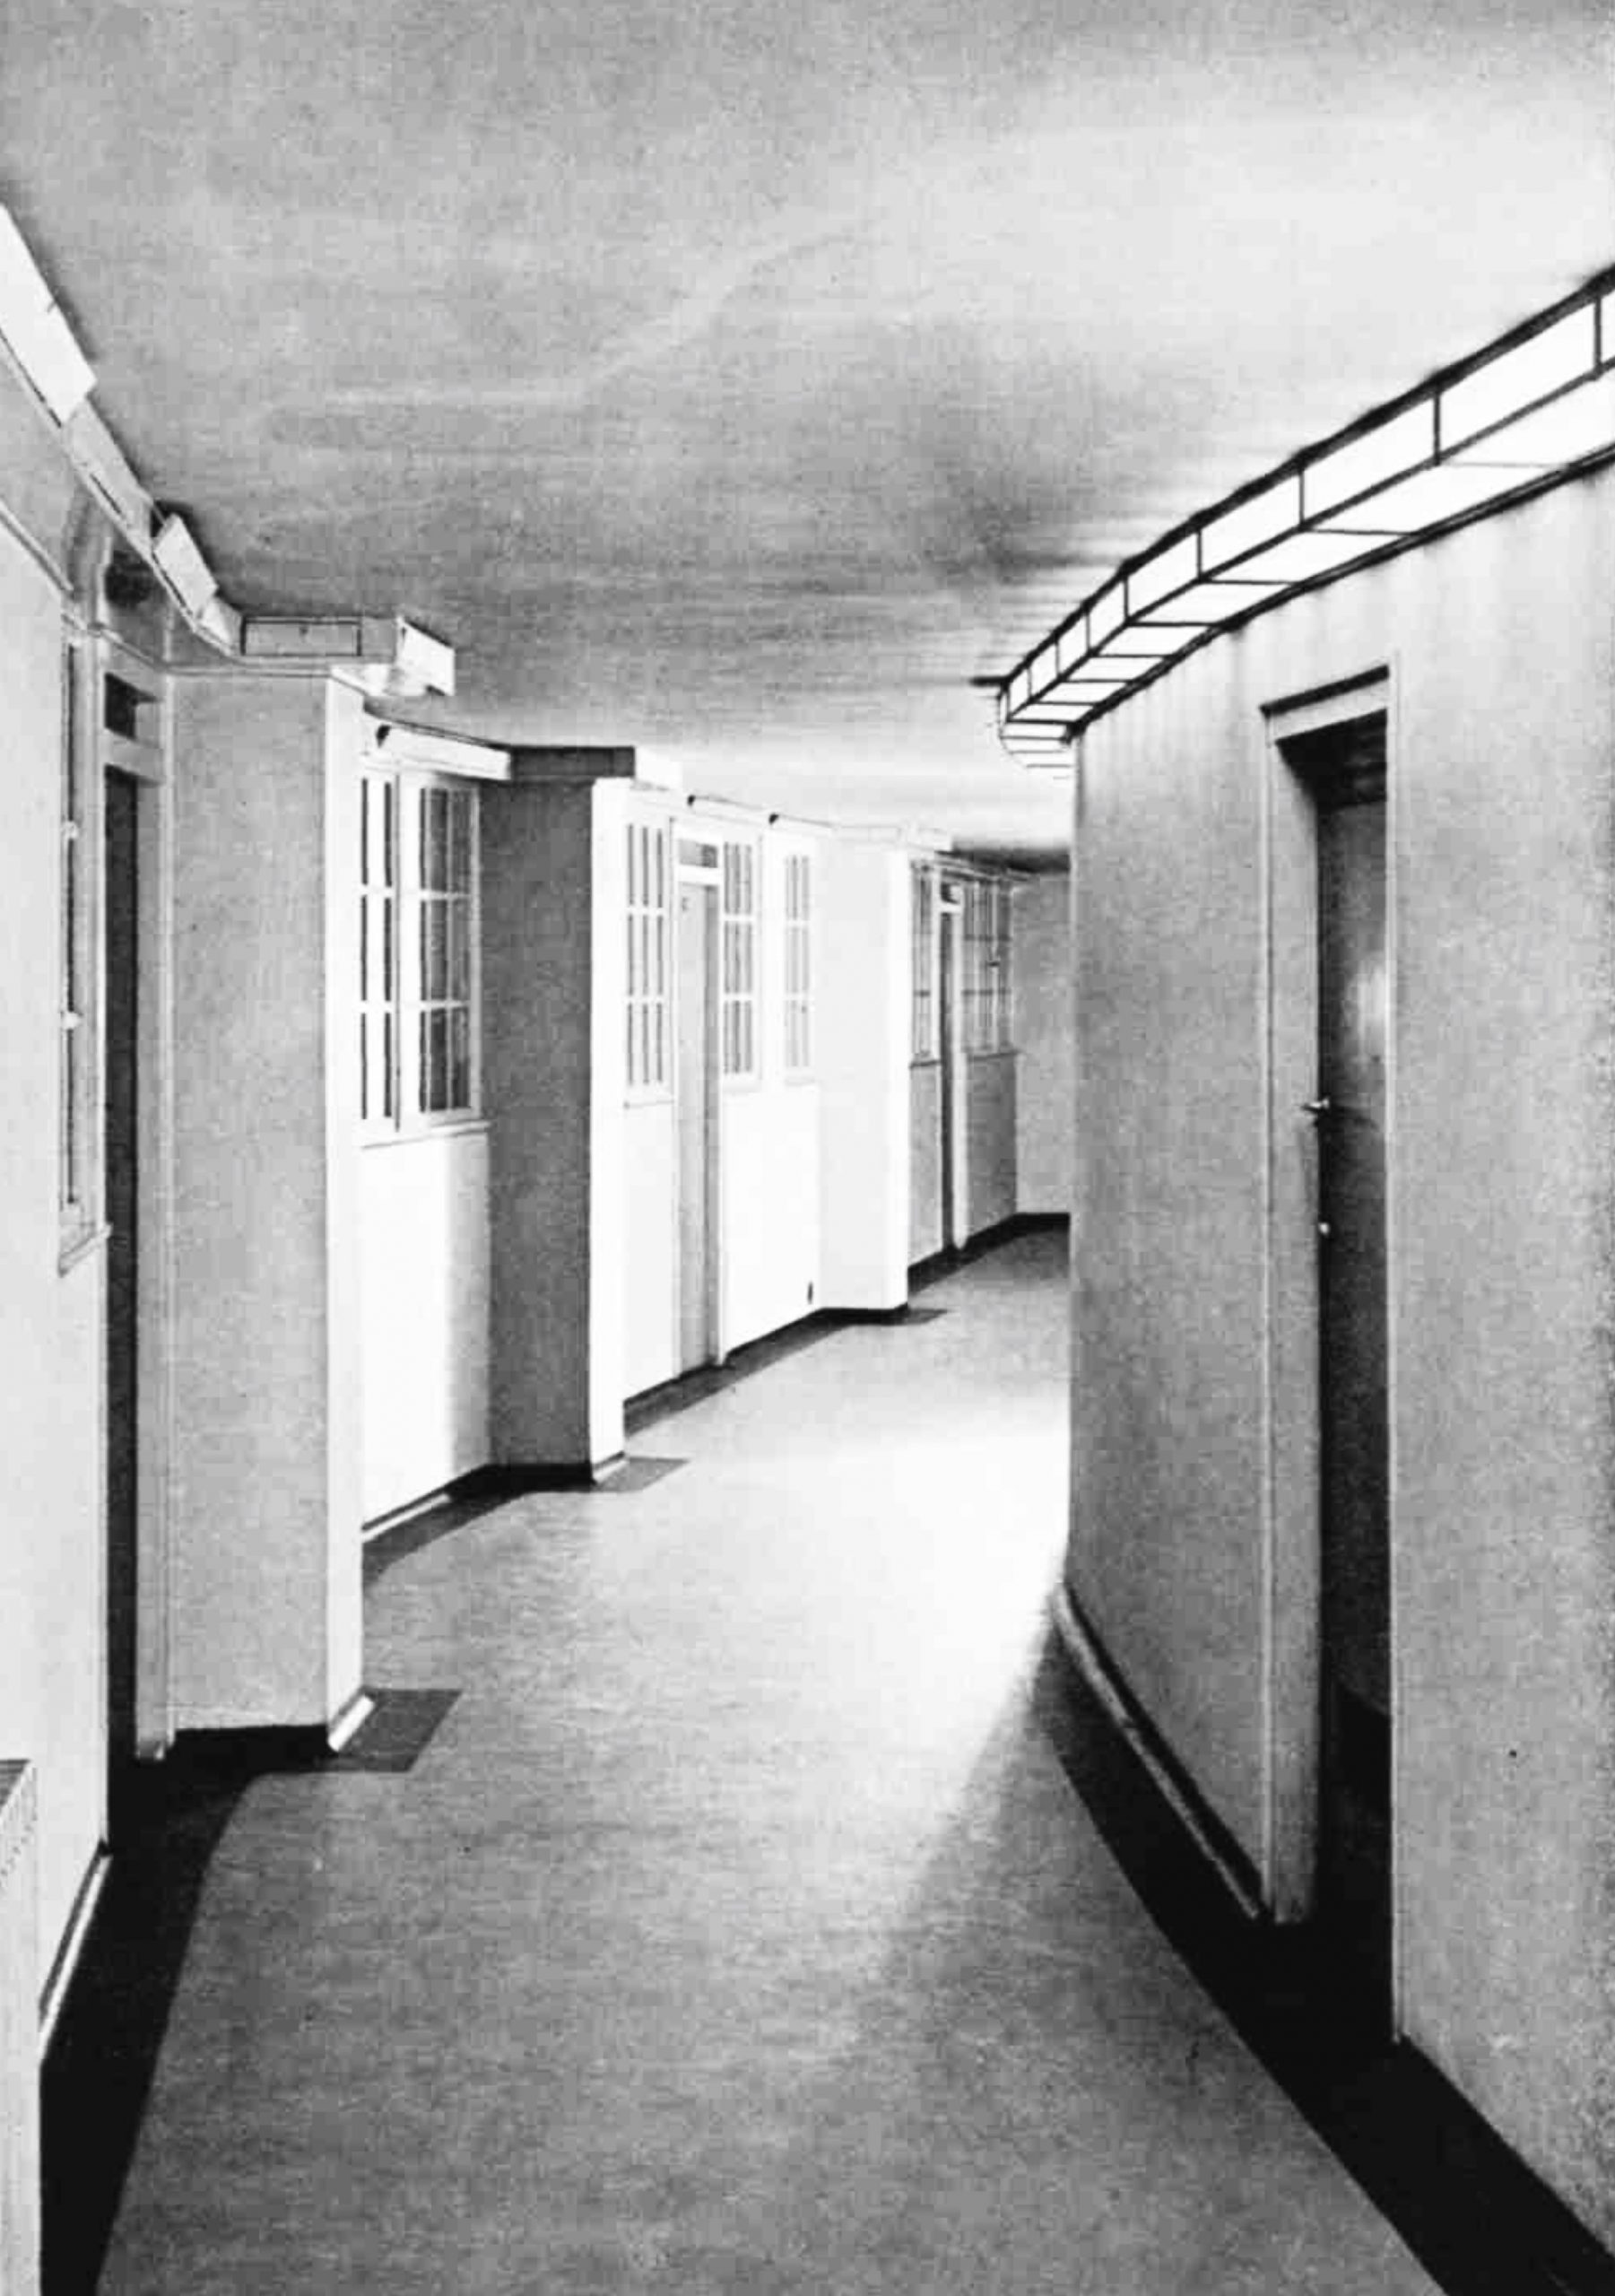 A corridor, curving to the right